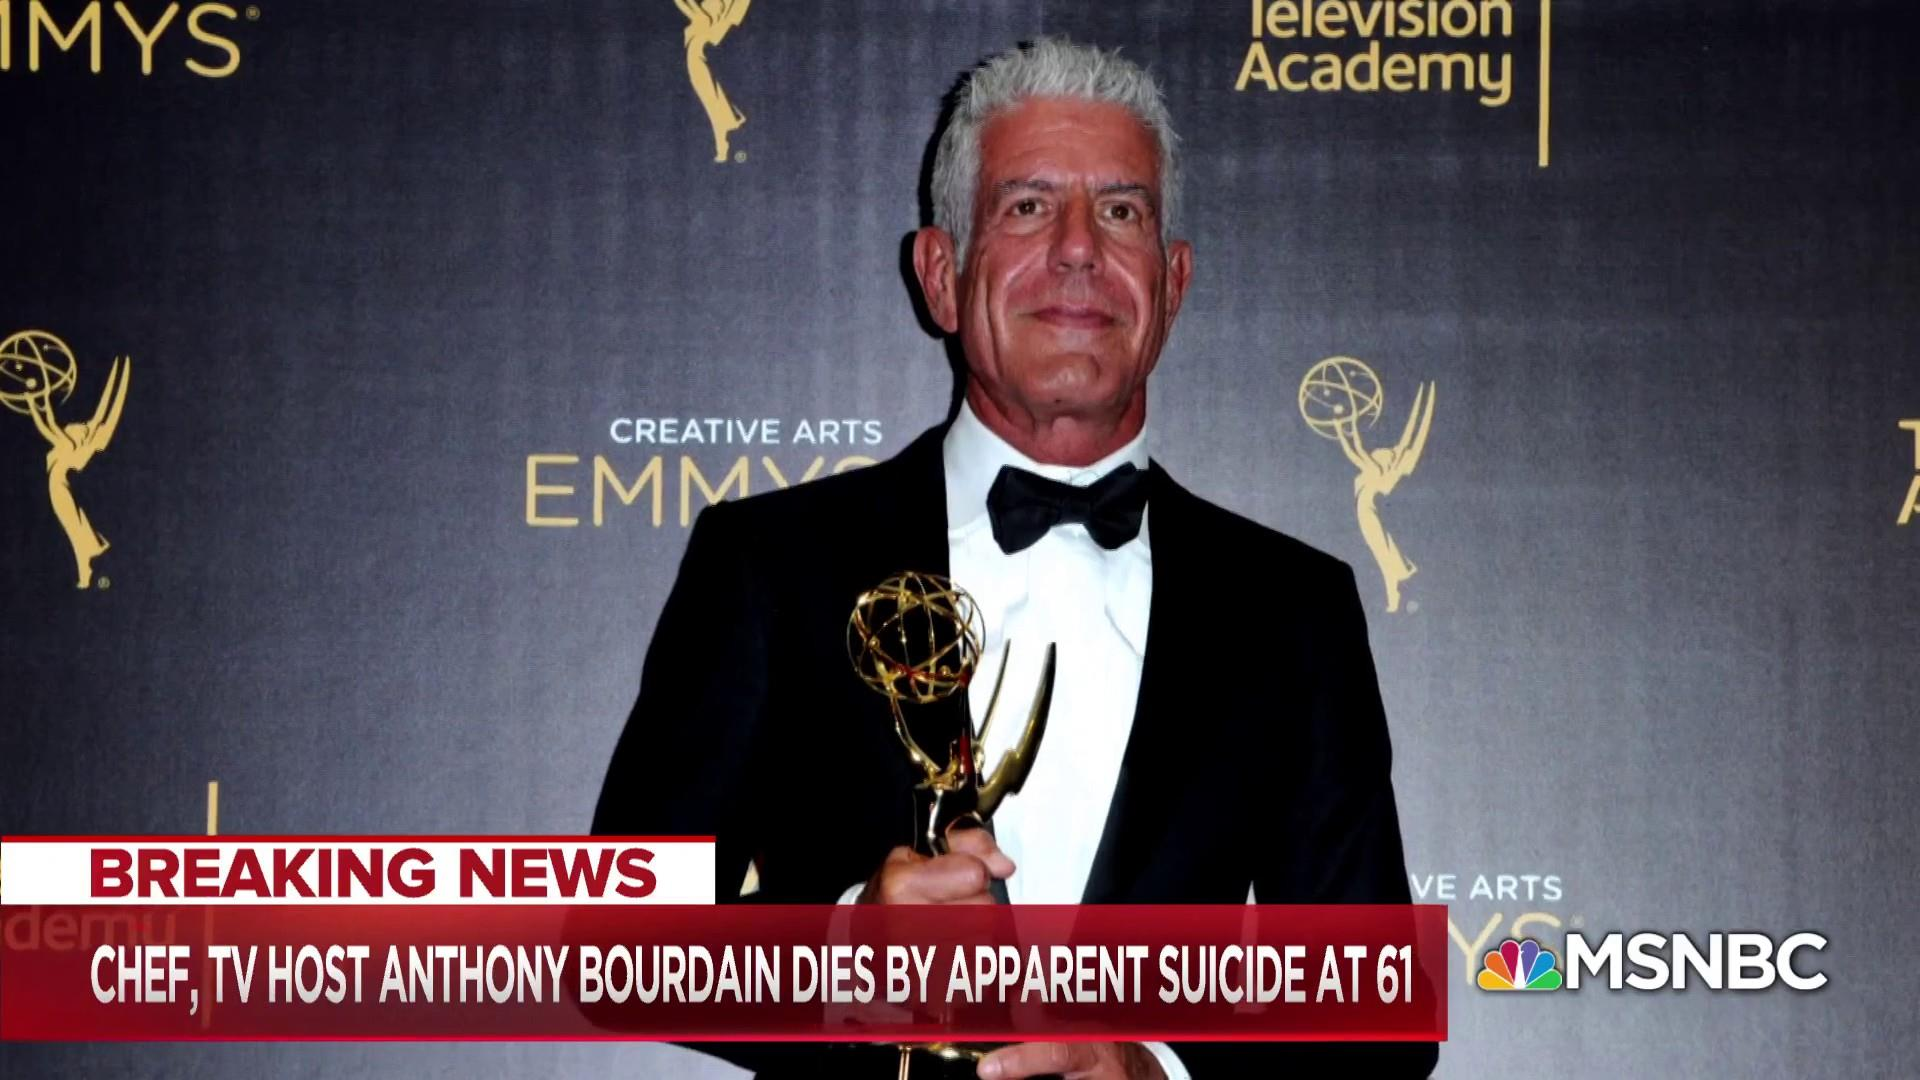 Renegade chef and journalist, Anthony Bourdain, found dead at 61